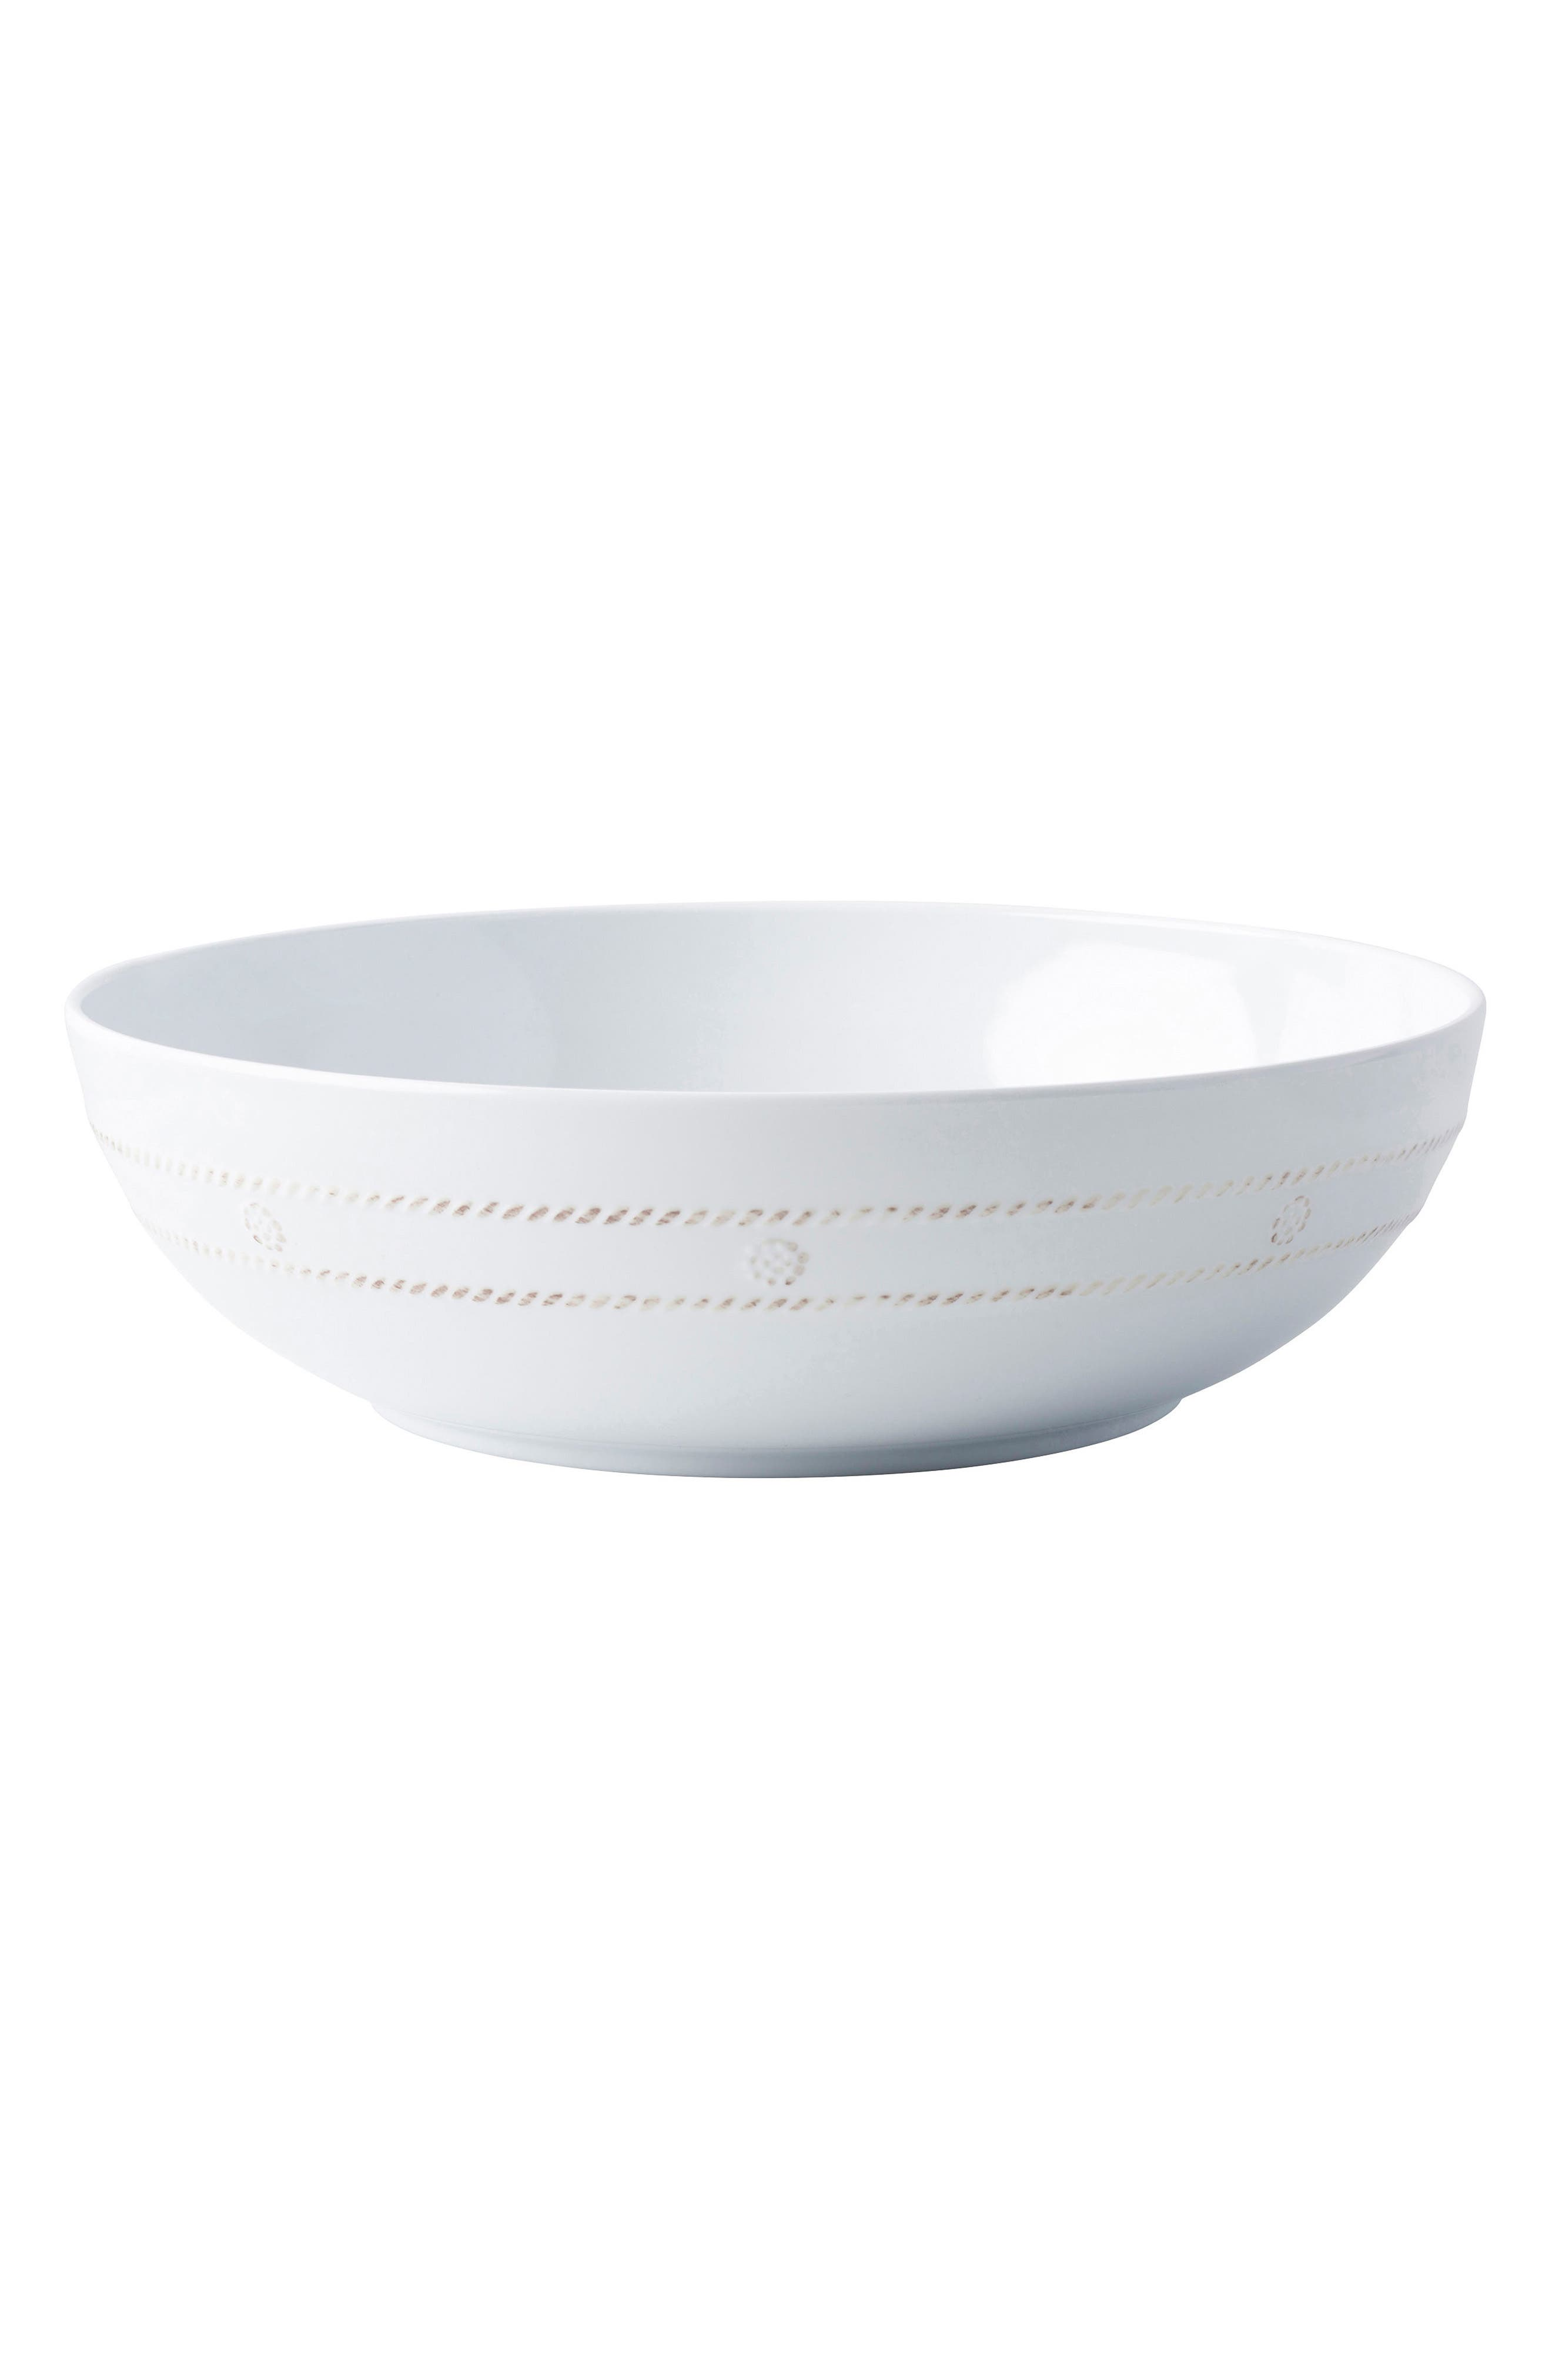 Berry & Thread Melamine Whitewash Bowl,                         Main,                         color, 100